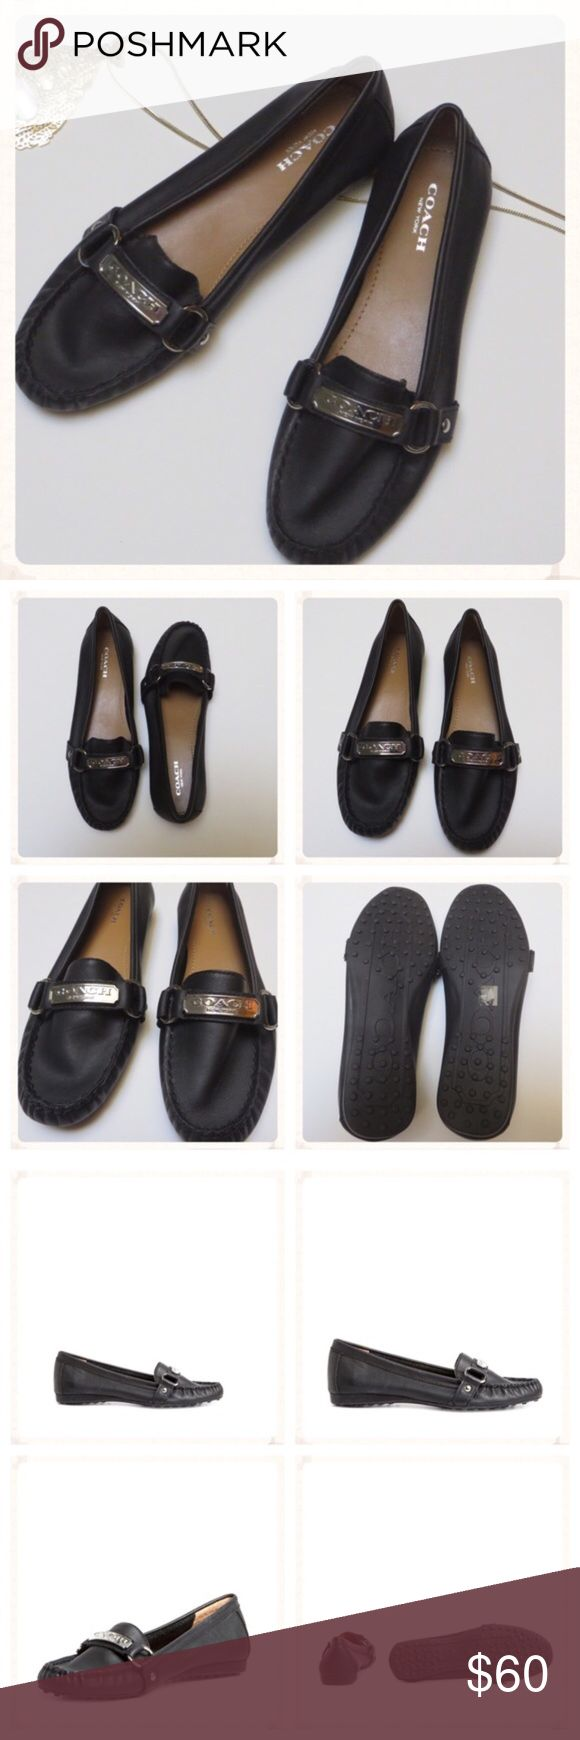 ! EUC Coach Felisha Driving Loafers - Black EUC Coach Felisha Driving Loafers.  The classic driving moc gets a plush update with pretty, silver polished hardware and a distinctive pod sole. Leather or suede upper. Slip-on construction. Leather lining. Lightly cushioned footbed. No box.  NO TRADES! Coach Shoes Flats & Loafers